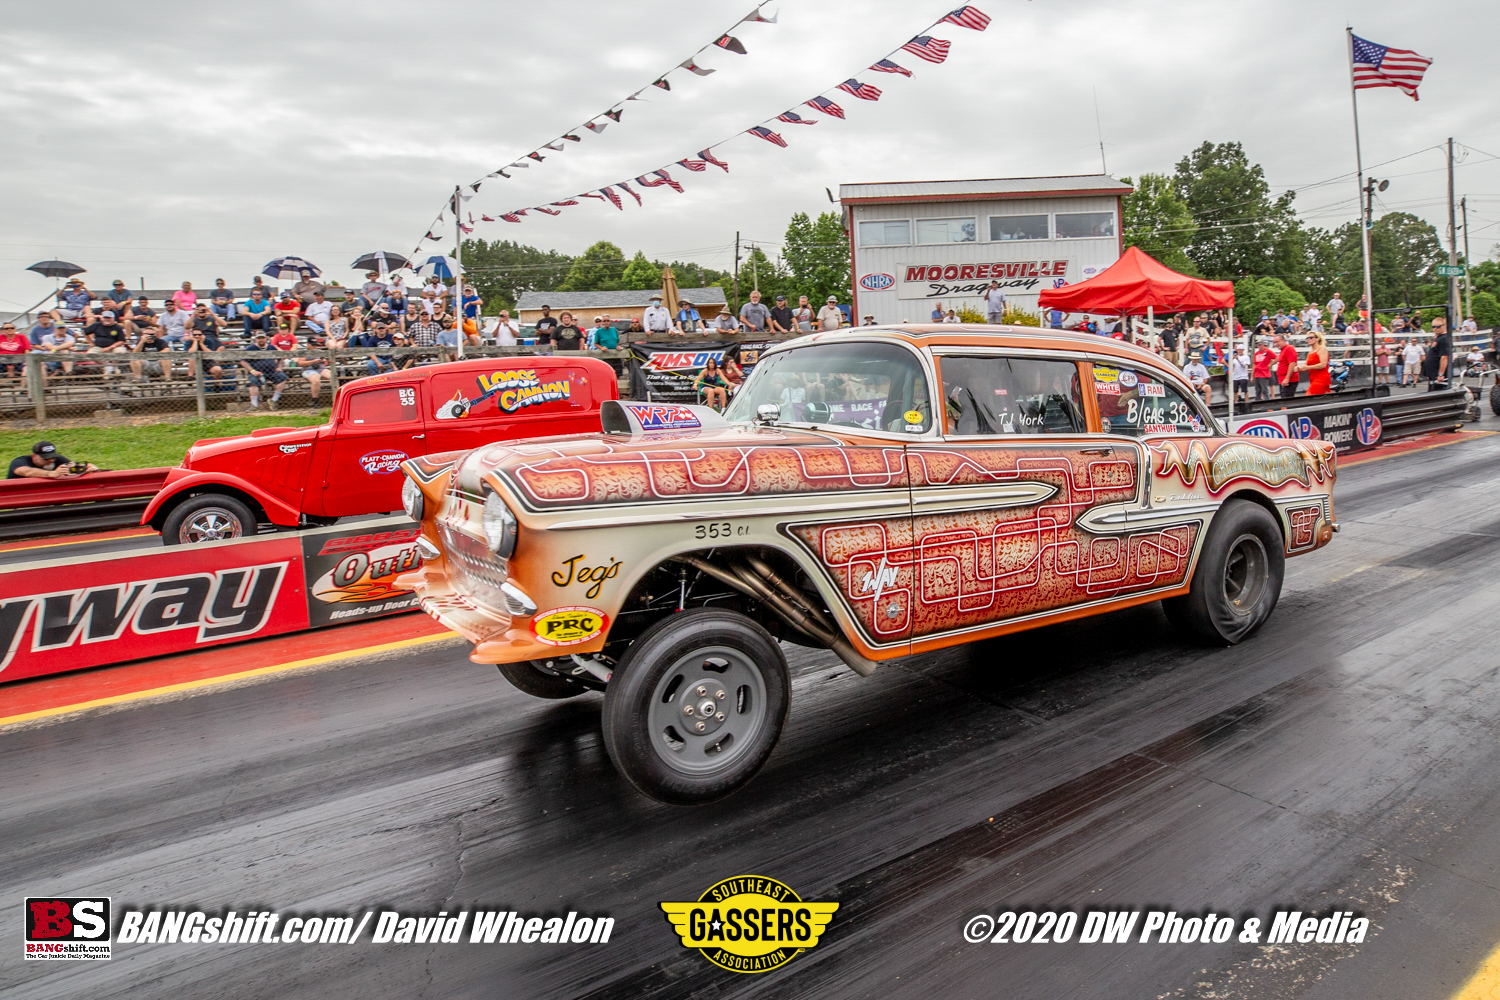 Southeast Gassers Action Photos: Mooresville Dragway Was Gasser Ground Zero and We Were There!